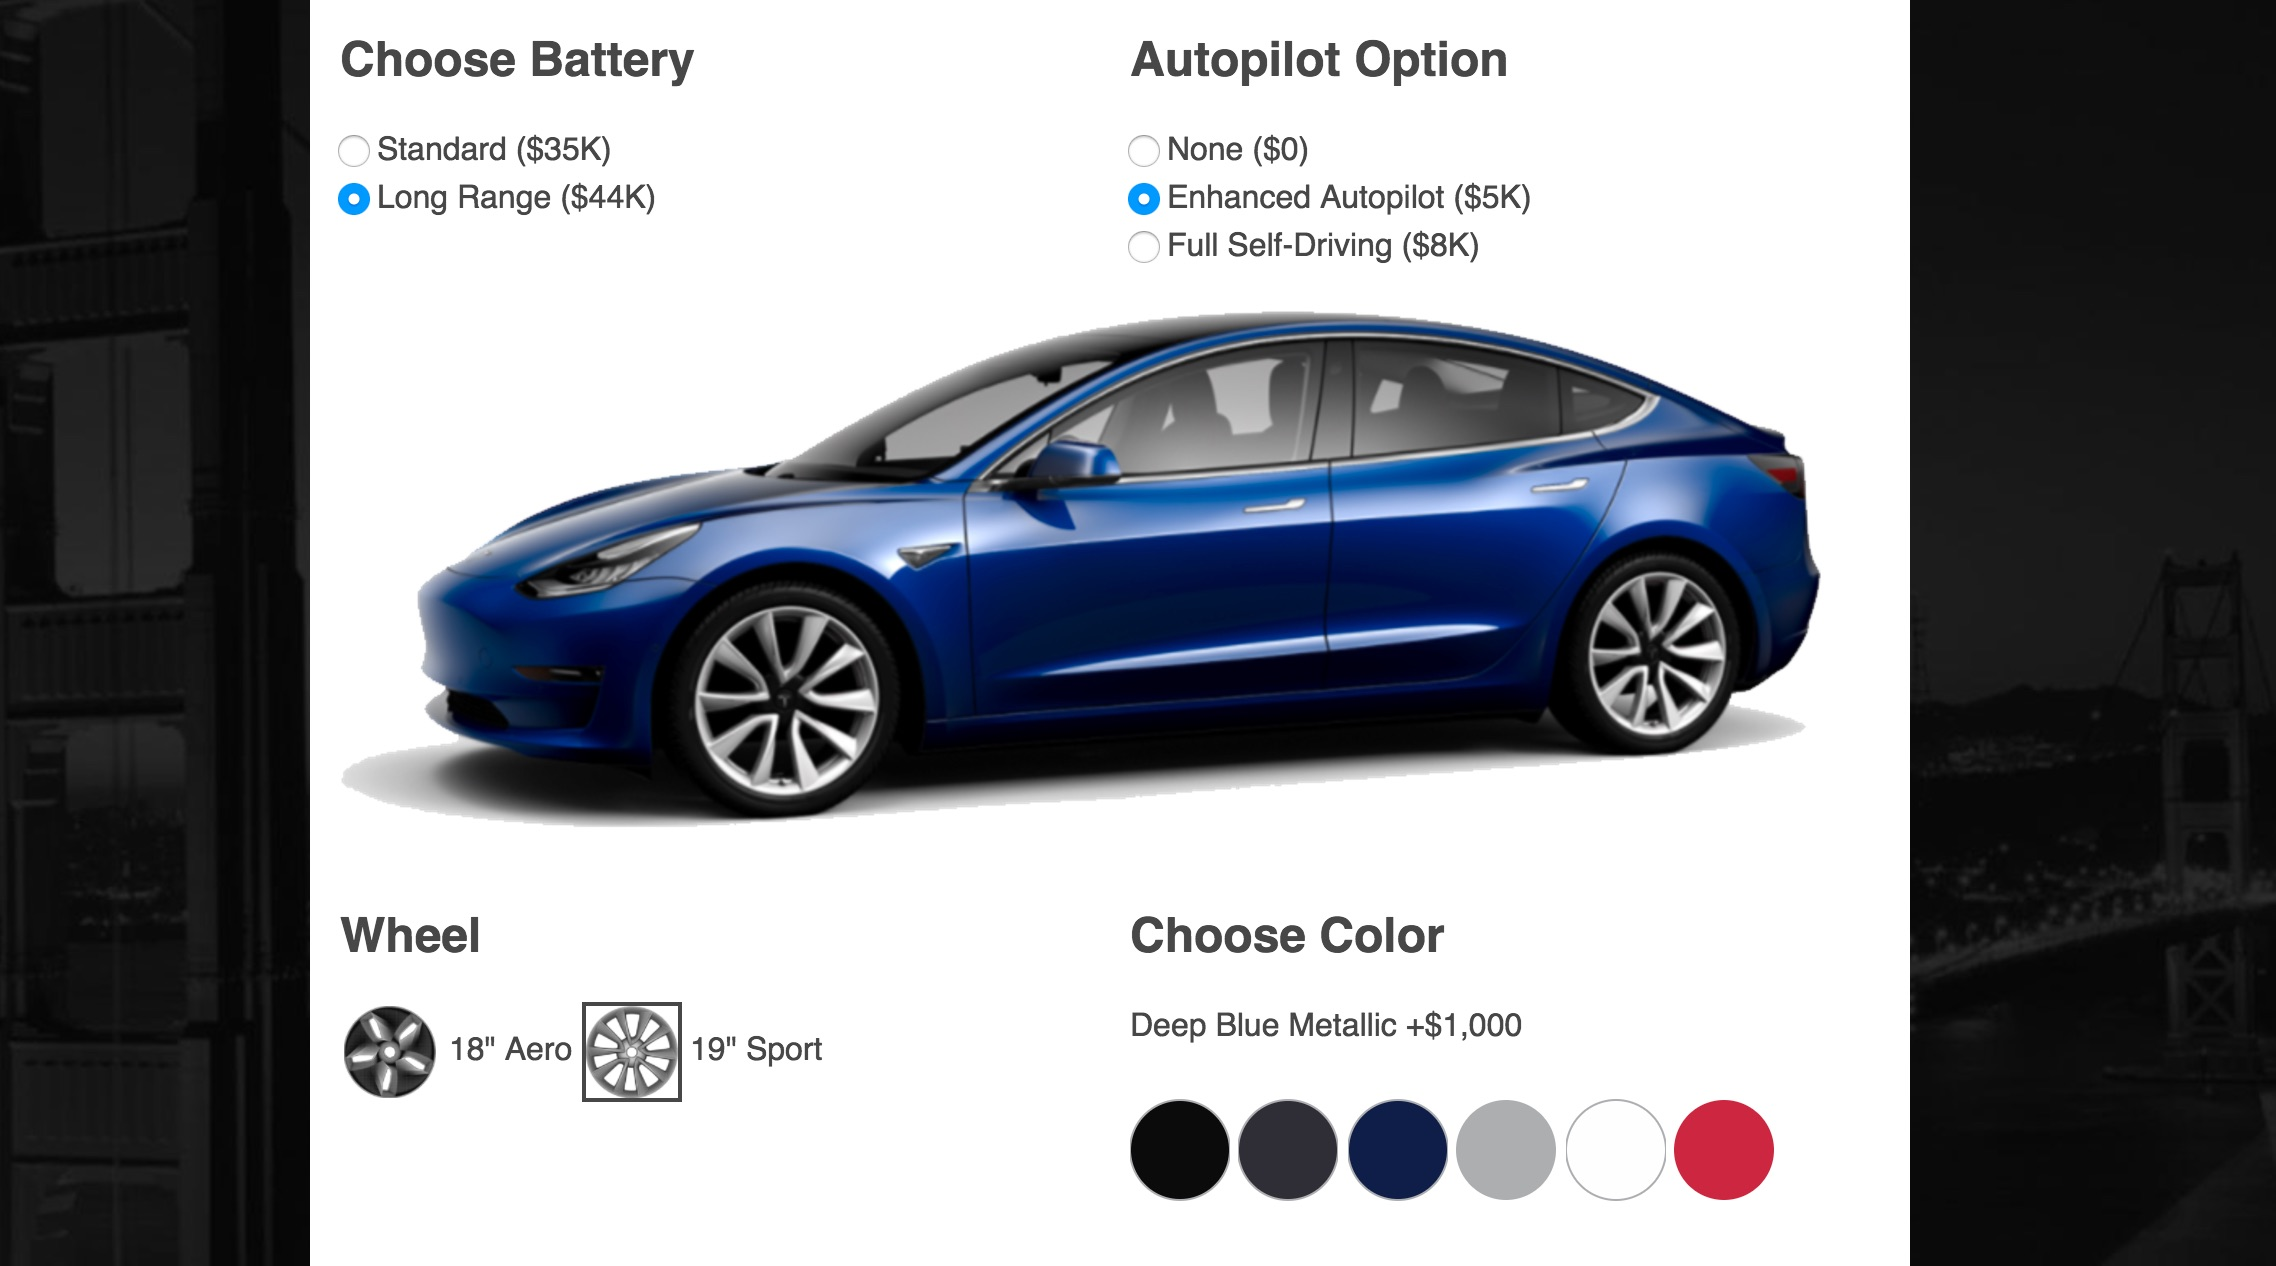 Tesla Model 3 Cost Estimator Computes Actual After Options And Tax Credit